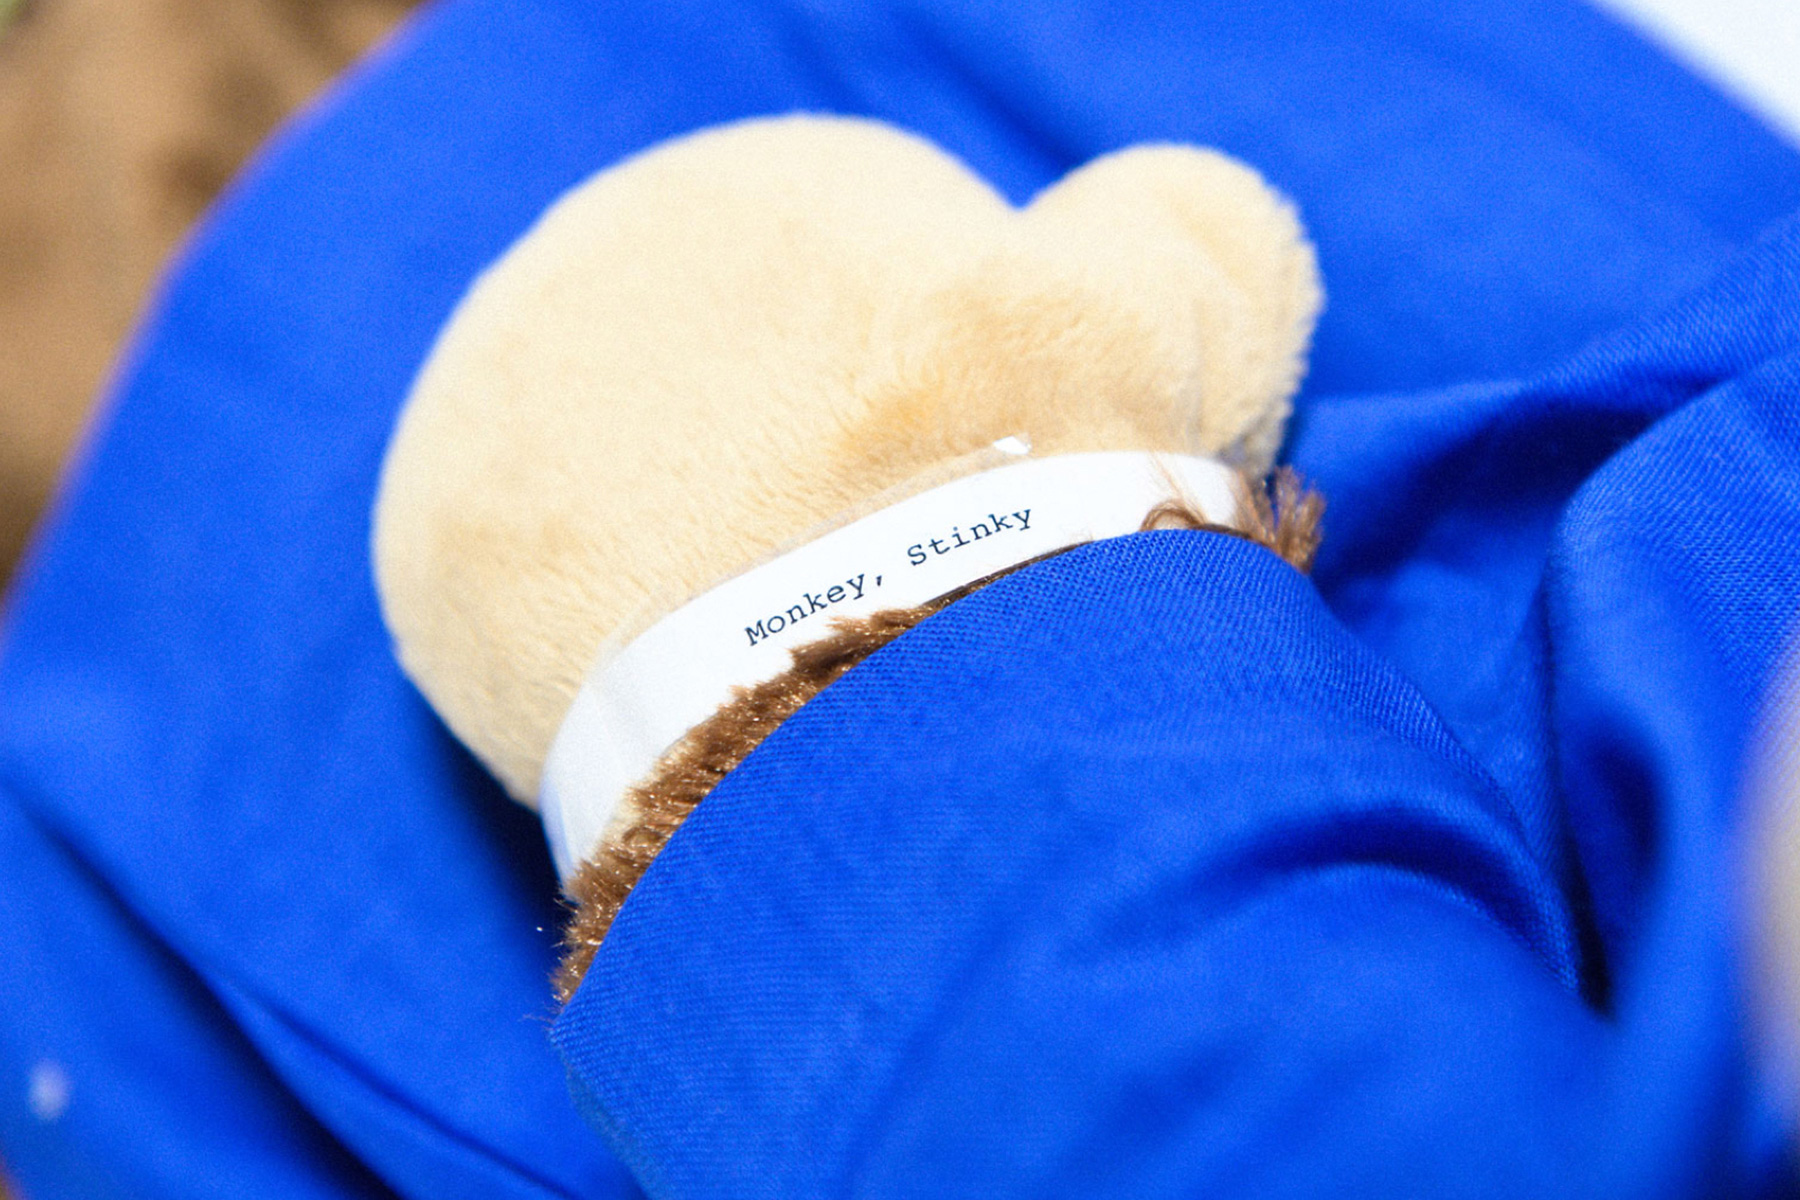 Stinky Monkey's hospital wrist band around his wrist with his name printed on it.